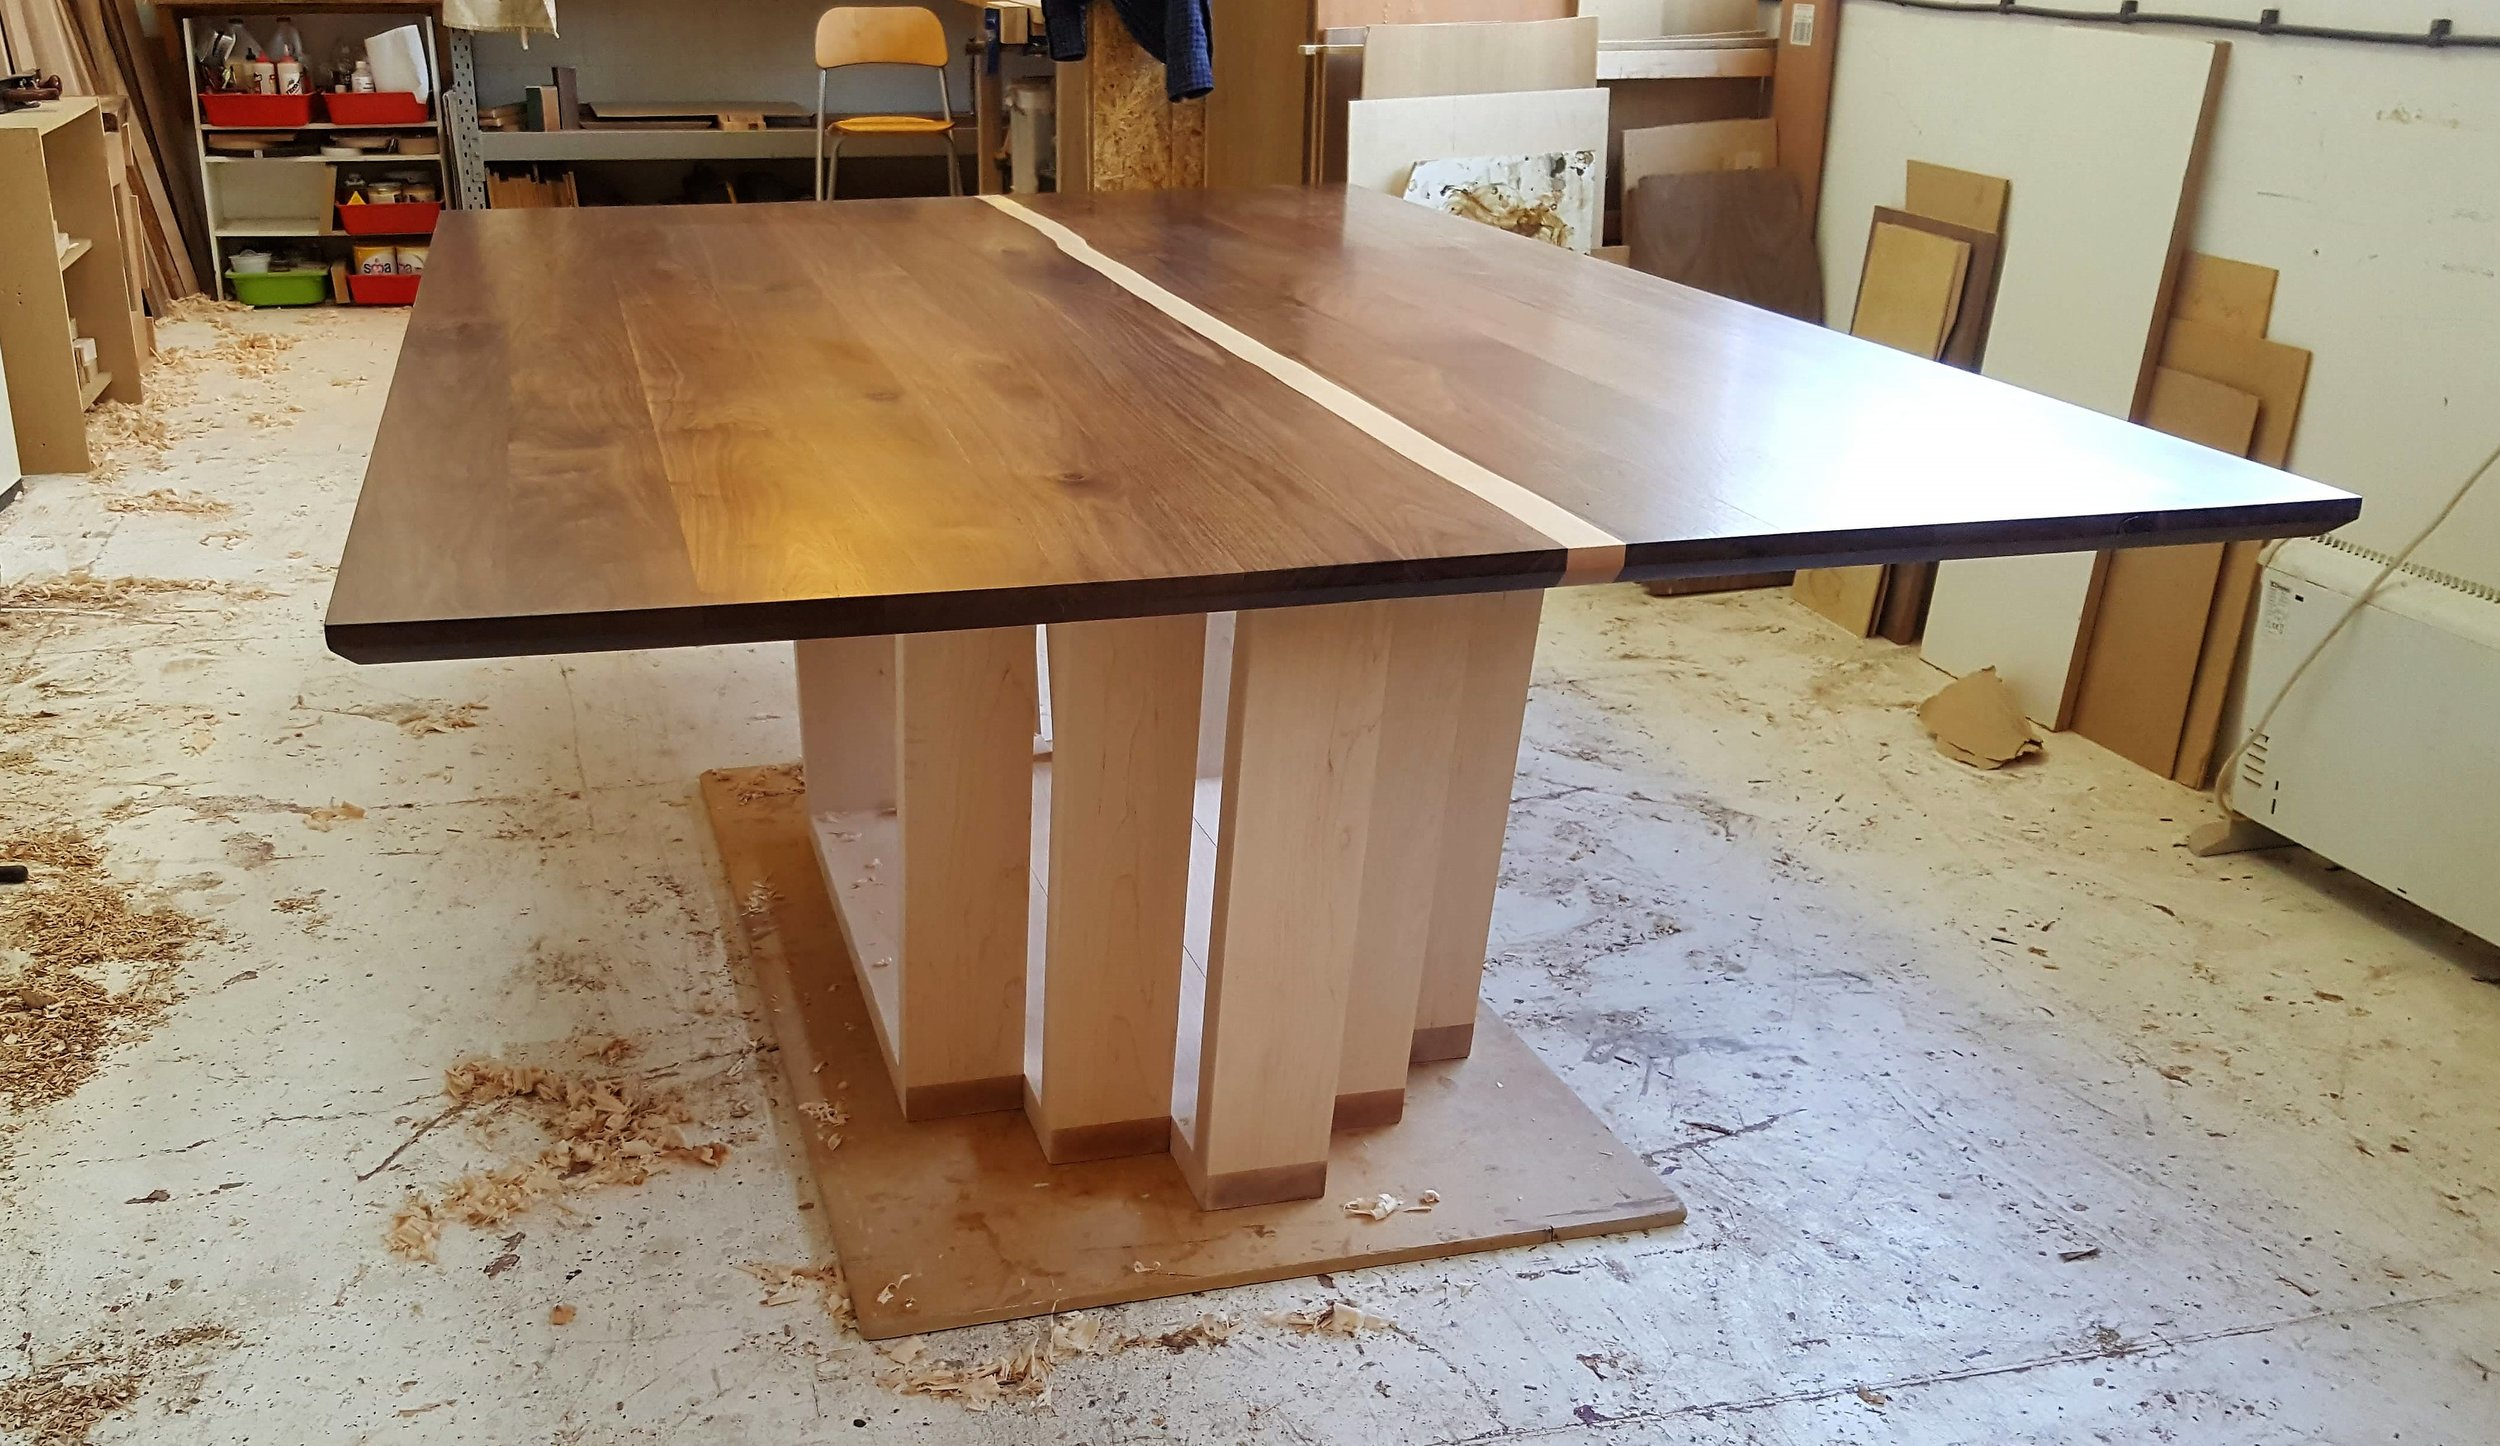 Heliconia_Furniturte_WalnutMaple_DiningTable_Assembly (3).jpg